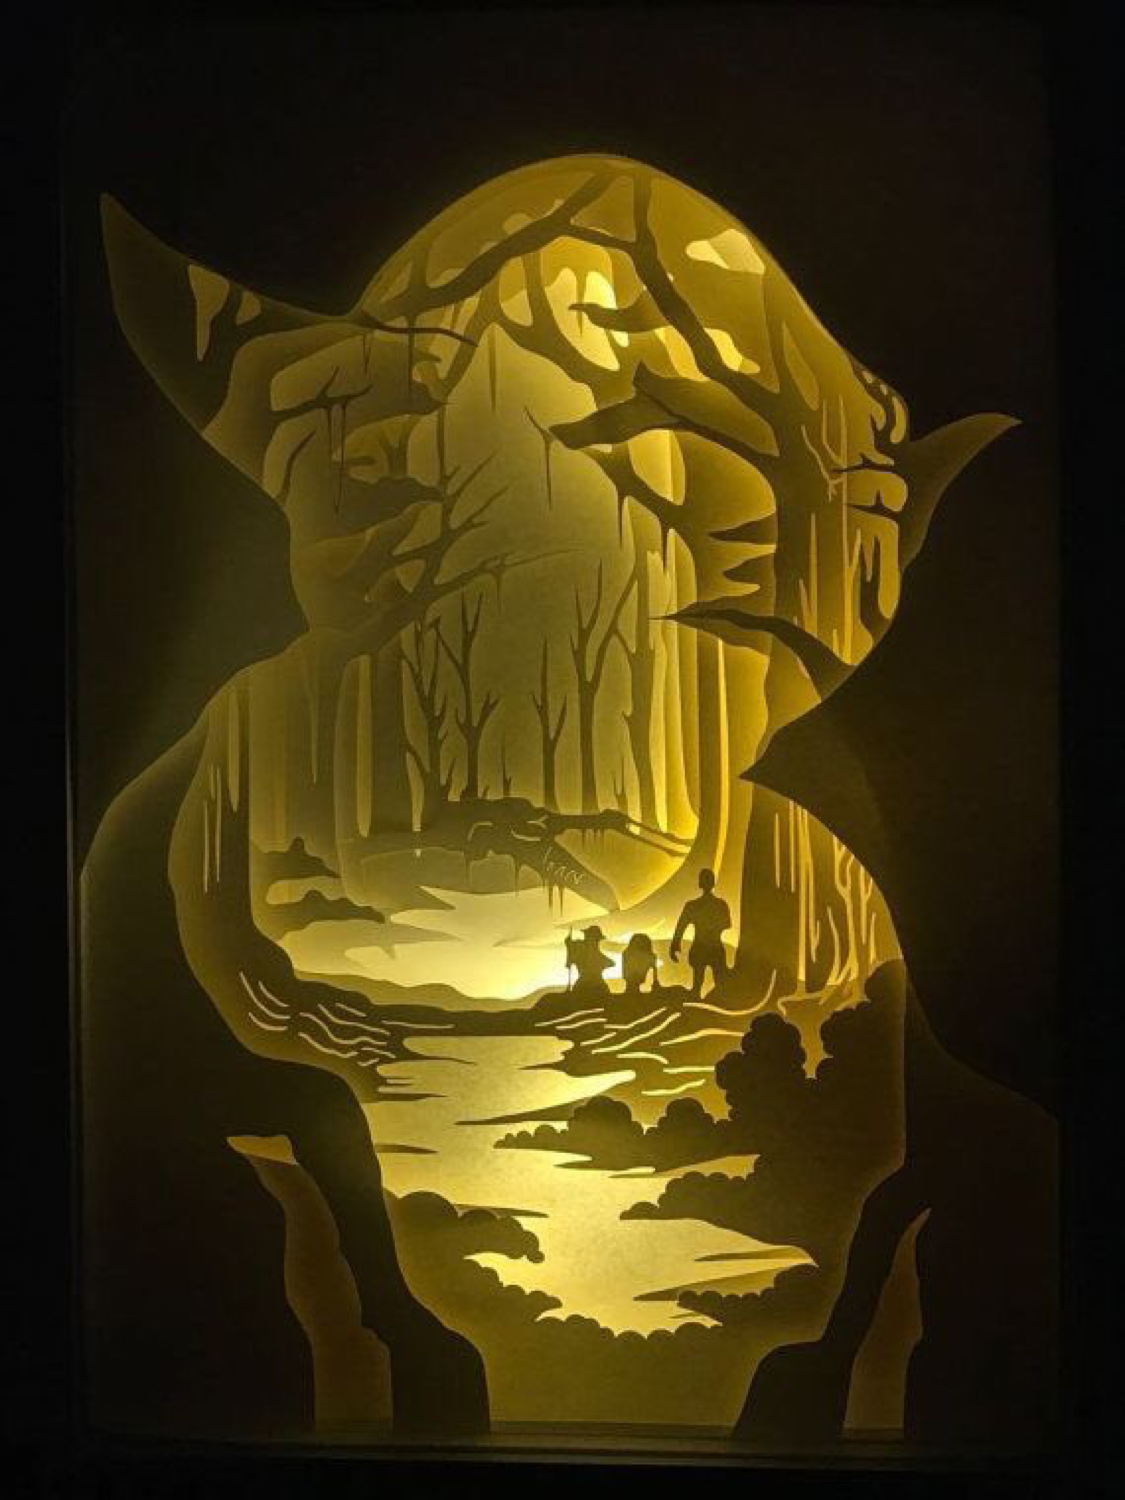 Pin By Plog Rogers On Star Wars Badassery Paper Cutting